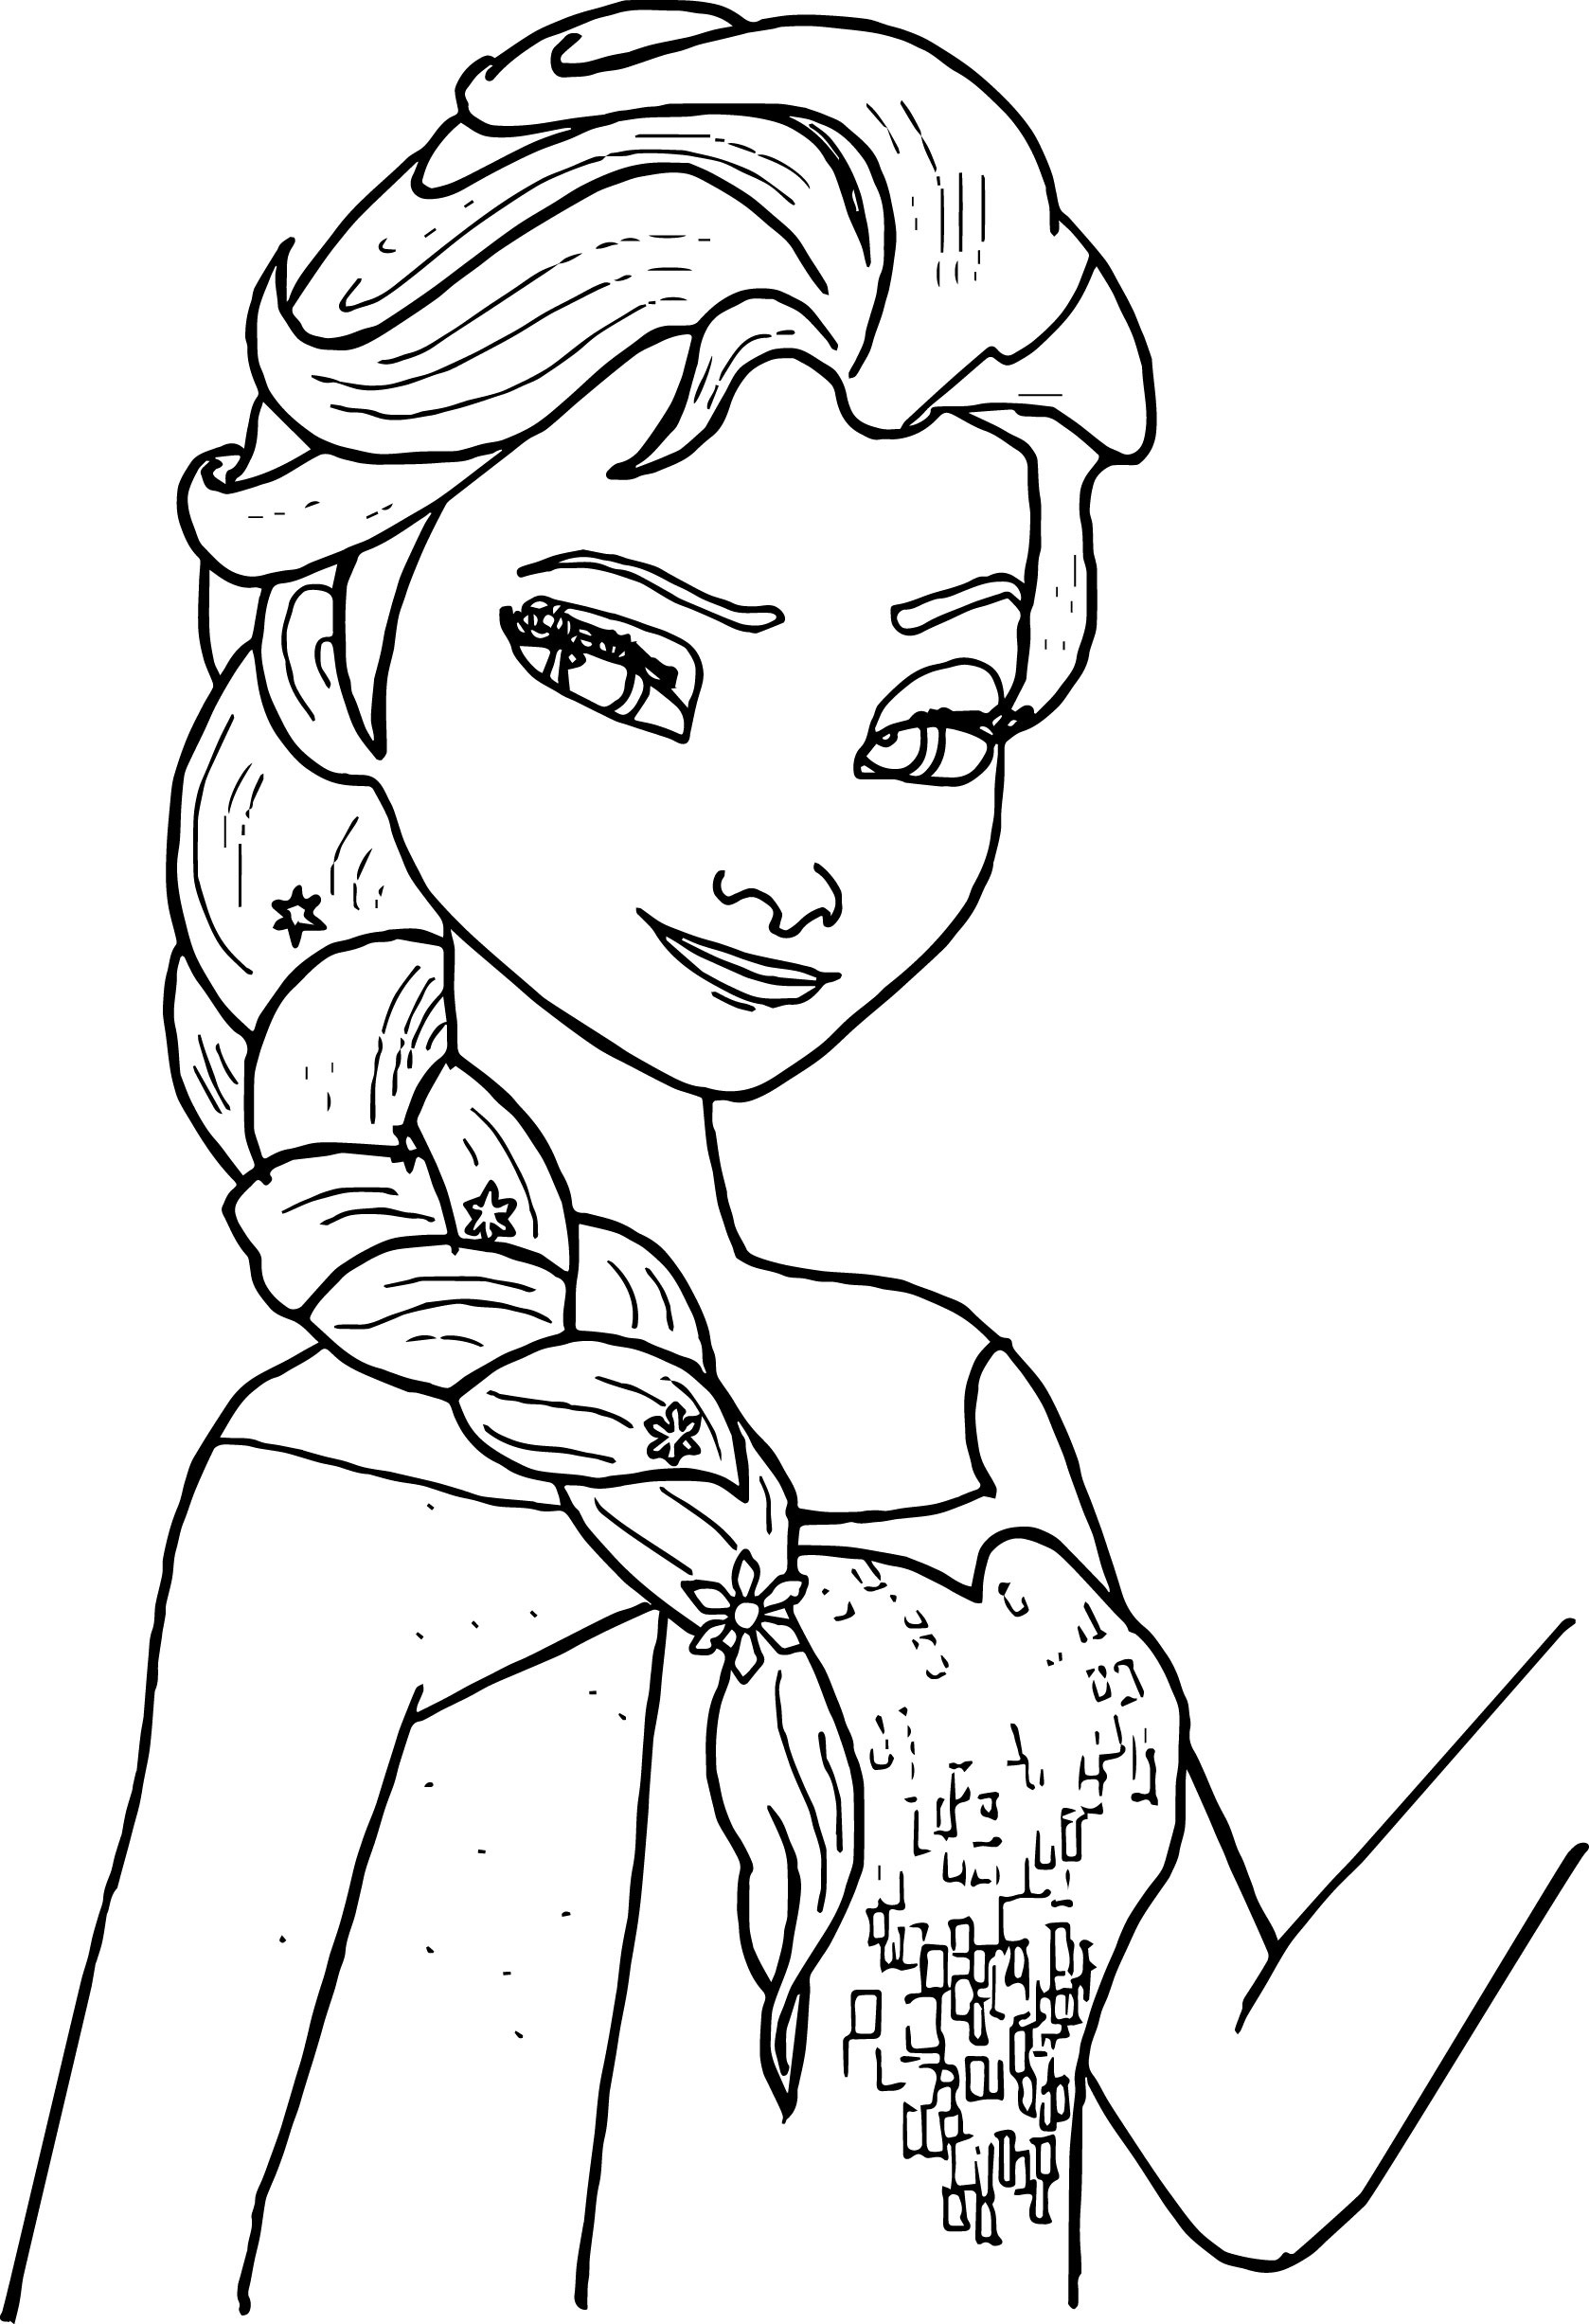 elsa printable coloring pages - free printable elsa coloring pages kids